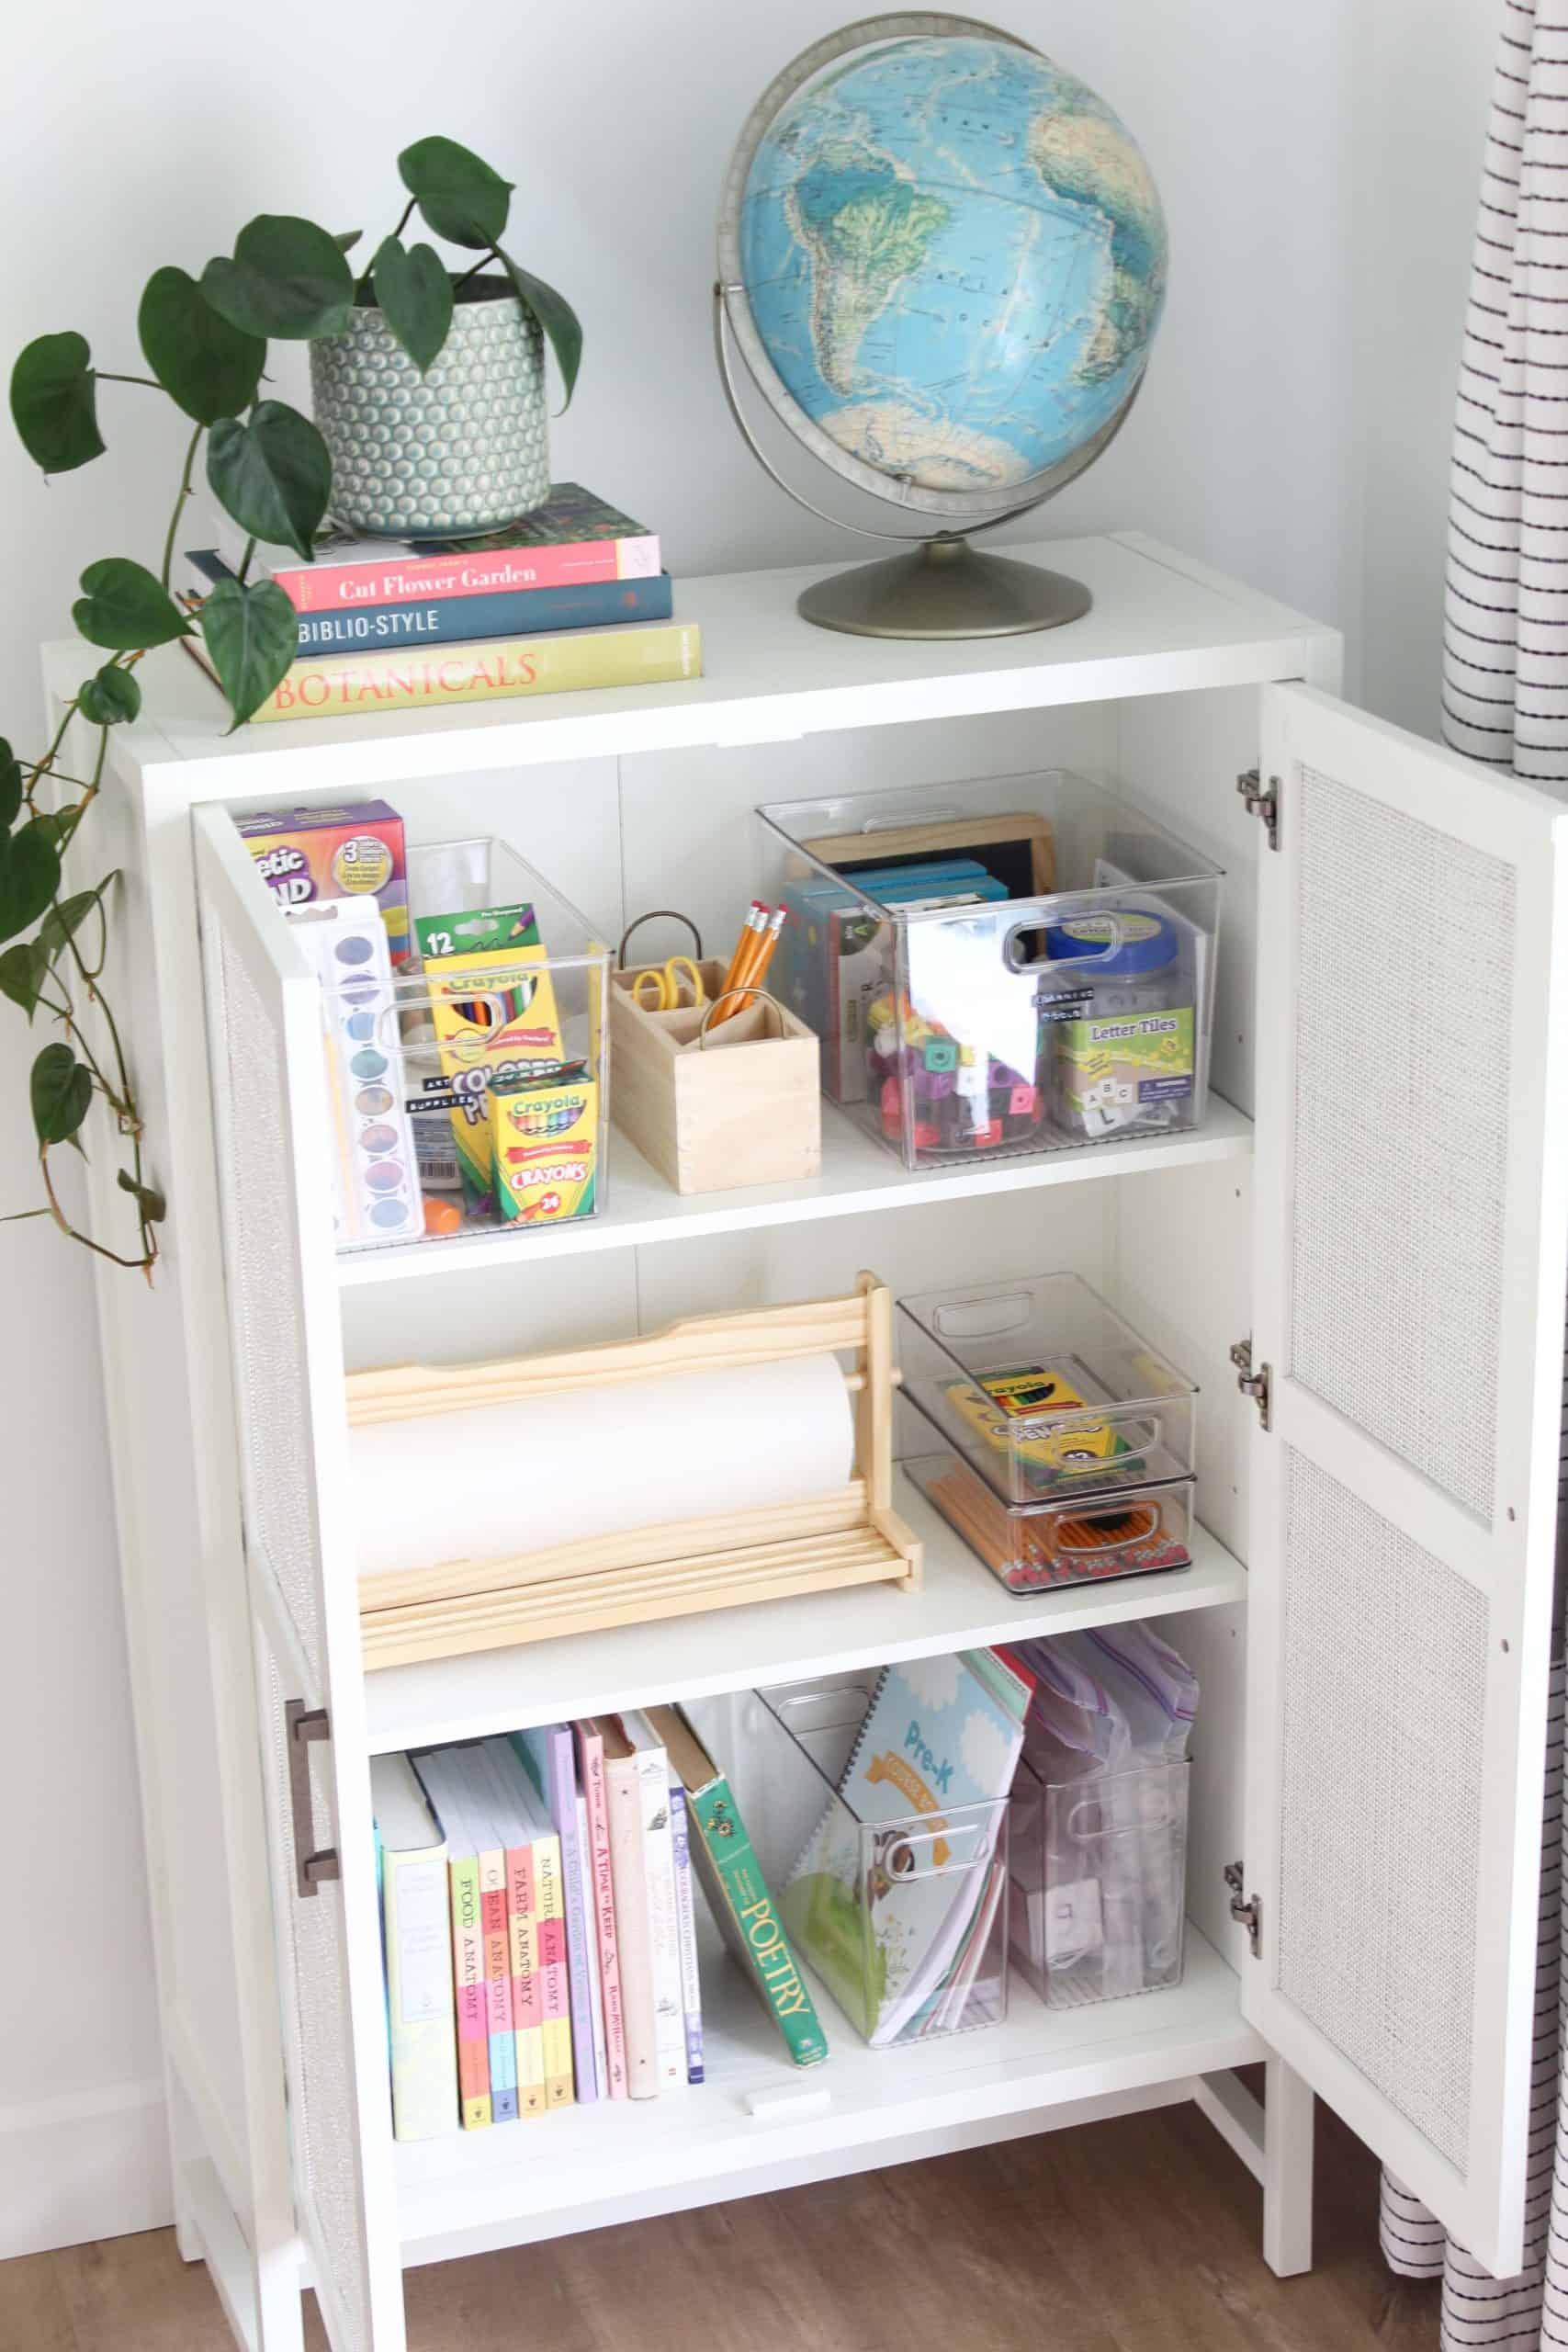 target warwick library cabinet in white, vintage globe, heart leaf philodendron, ikea paper dispenser, homeschool supplies, homeschool cabinet